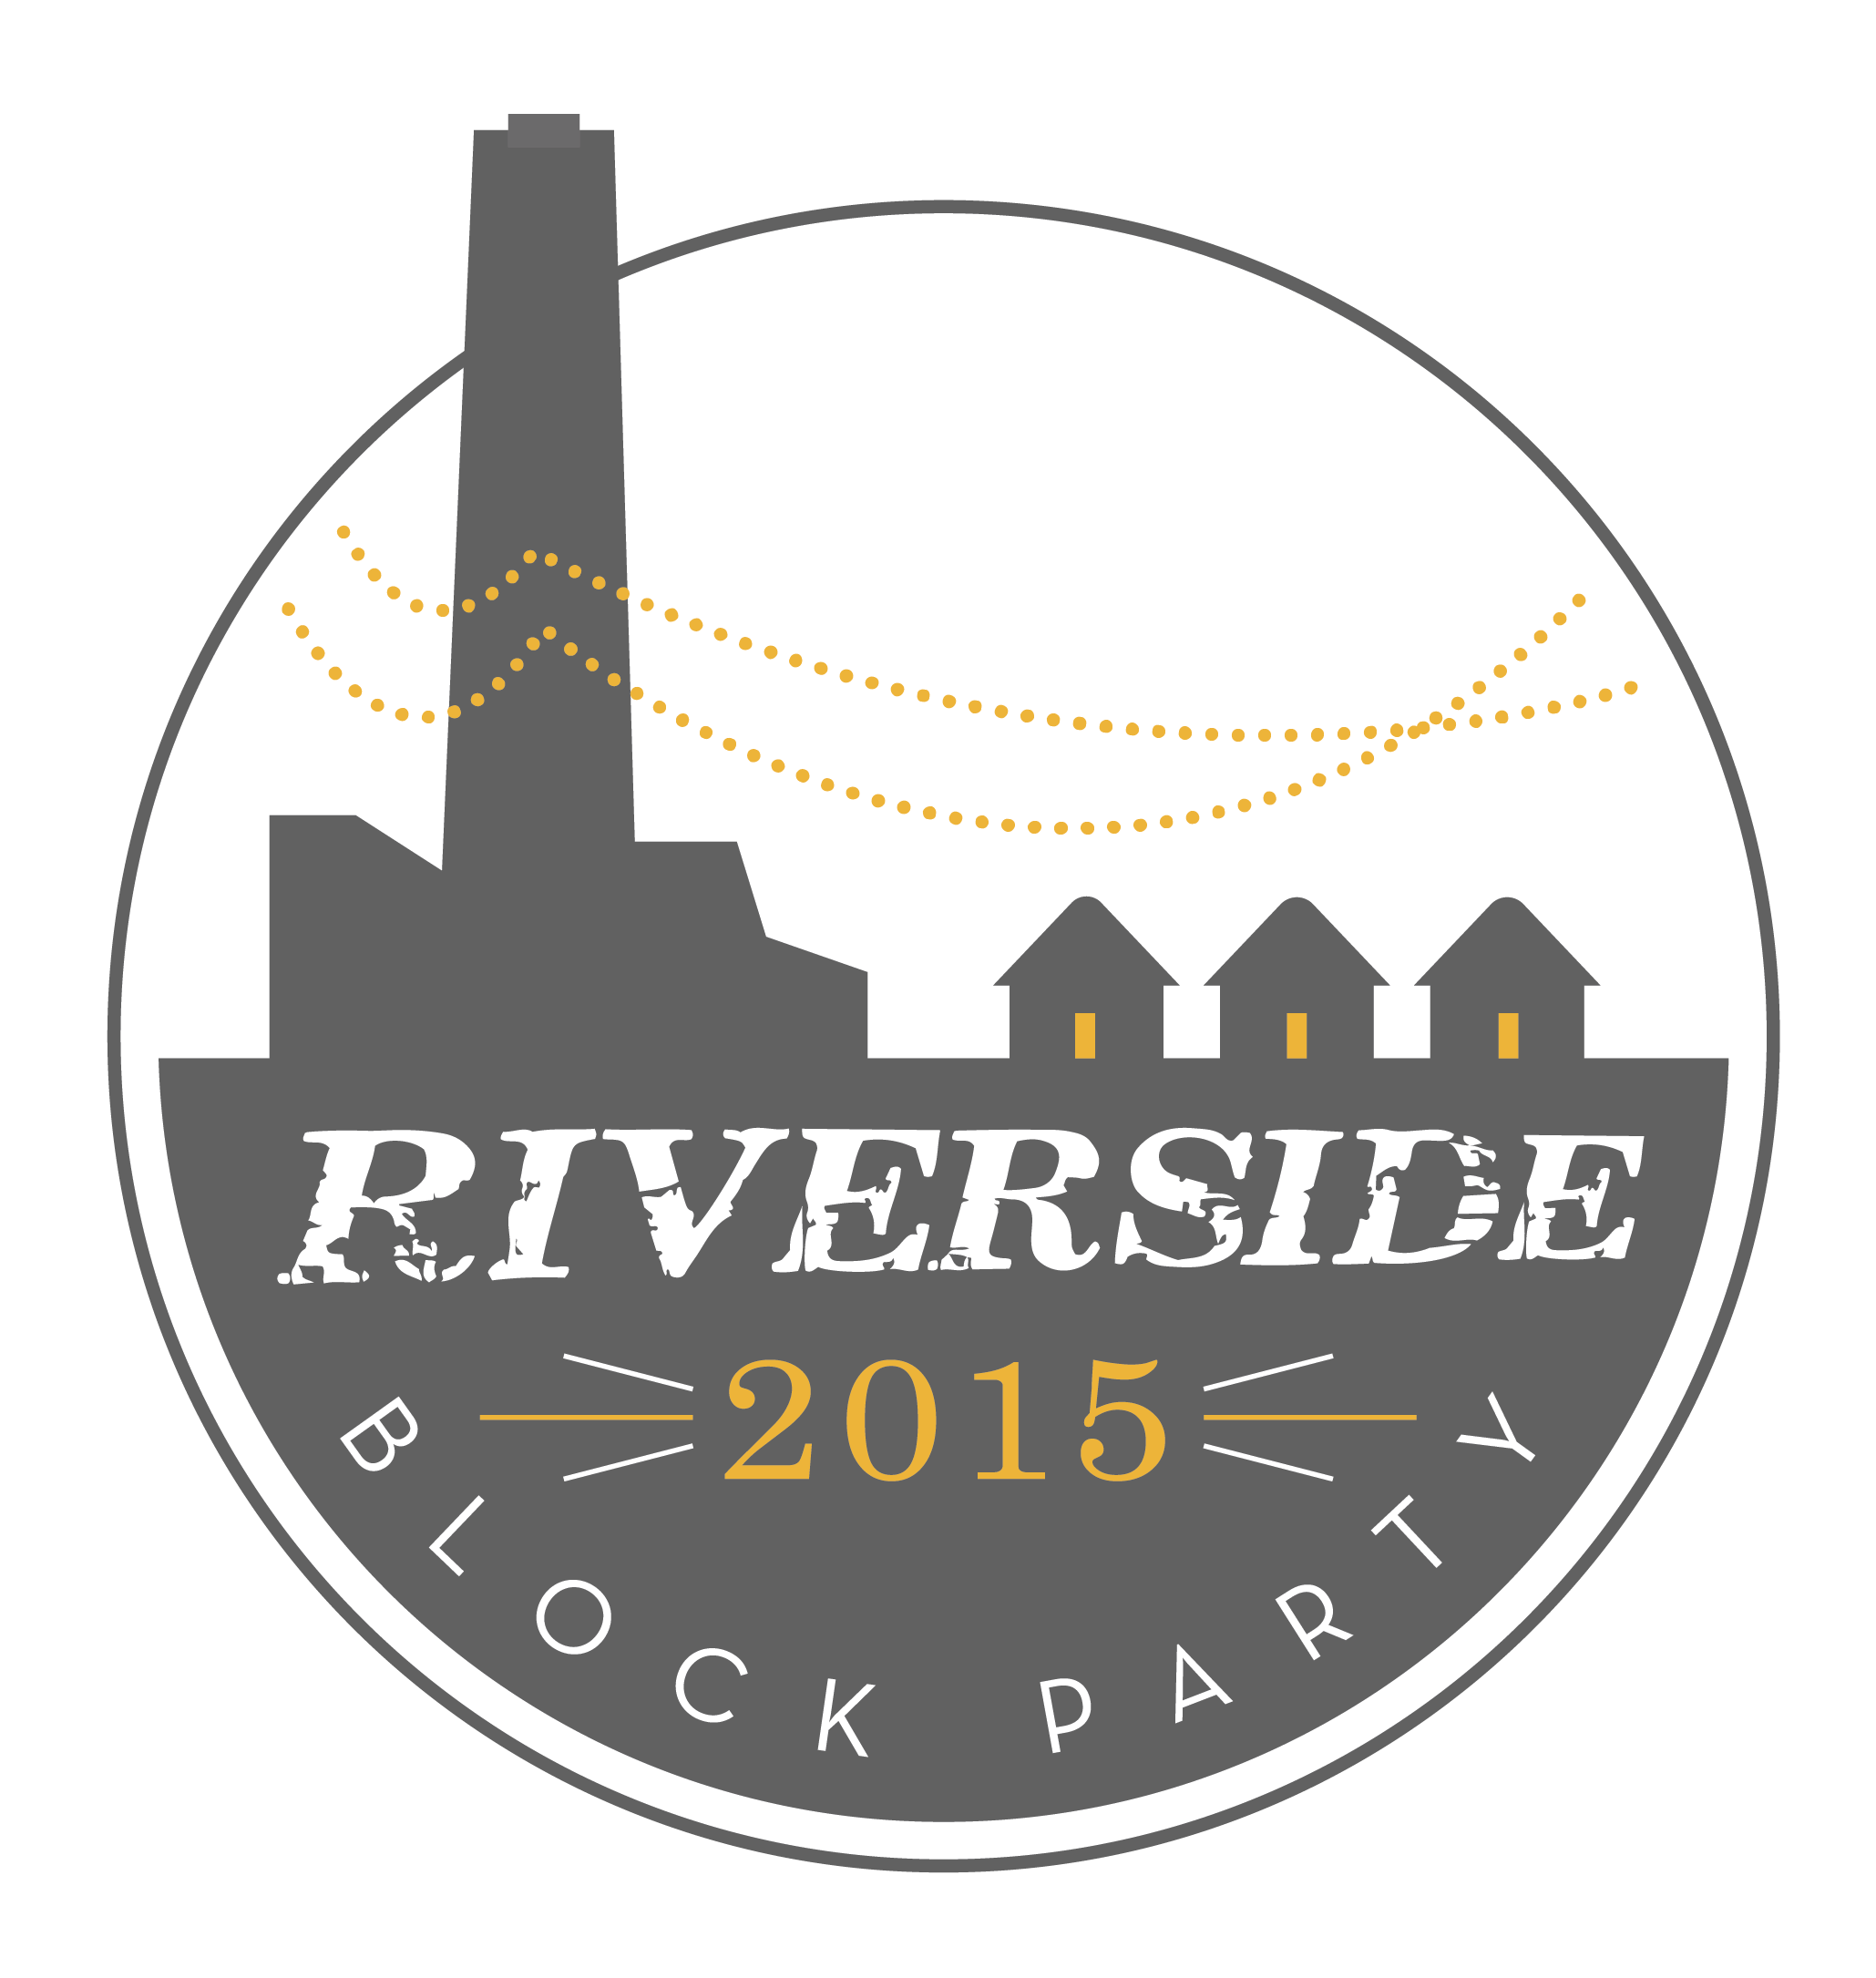 The 2015 Riverside Block Party was a huge success and raised over $3,800! Thank you to Farmer's Insurance, Hottie Hawgs, Westside Pizza, John Noel, Katie Martin and Chris Worfel and to everyone who donated to our silent auction. And a special thank you to City of Atlanta Council Members Mary Norwood, Andre Dickens and Felicia Moore for attending. All profits generated benefited the Riverside Neighborhood Association, Inc. and the Riverside Security Patrol.